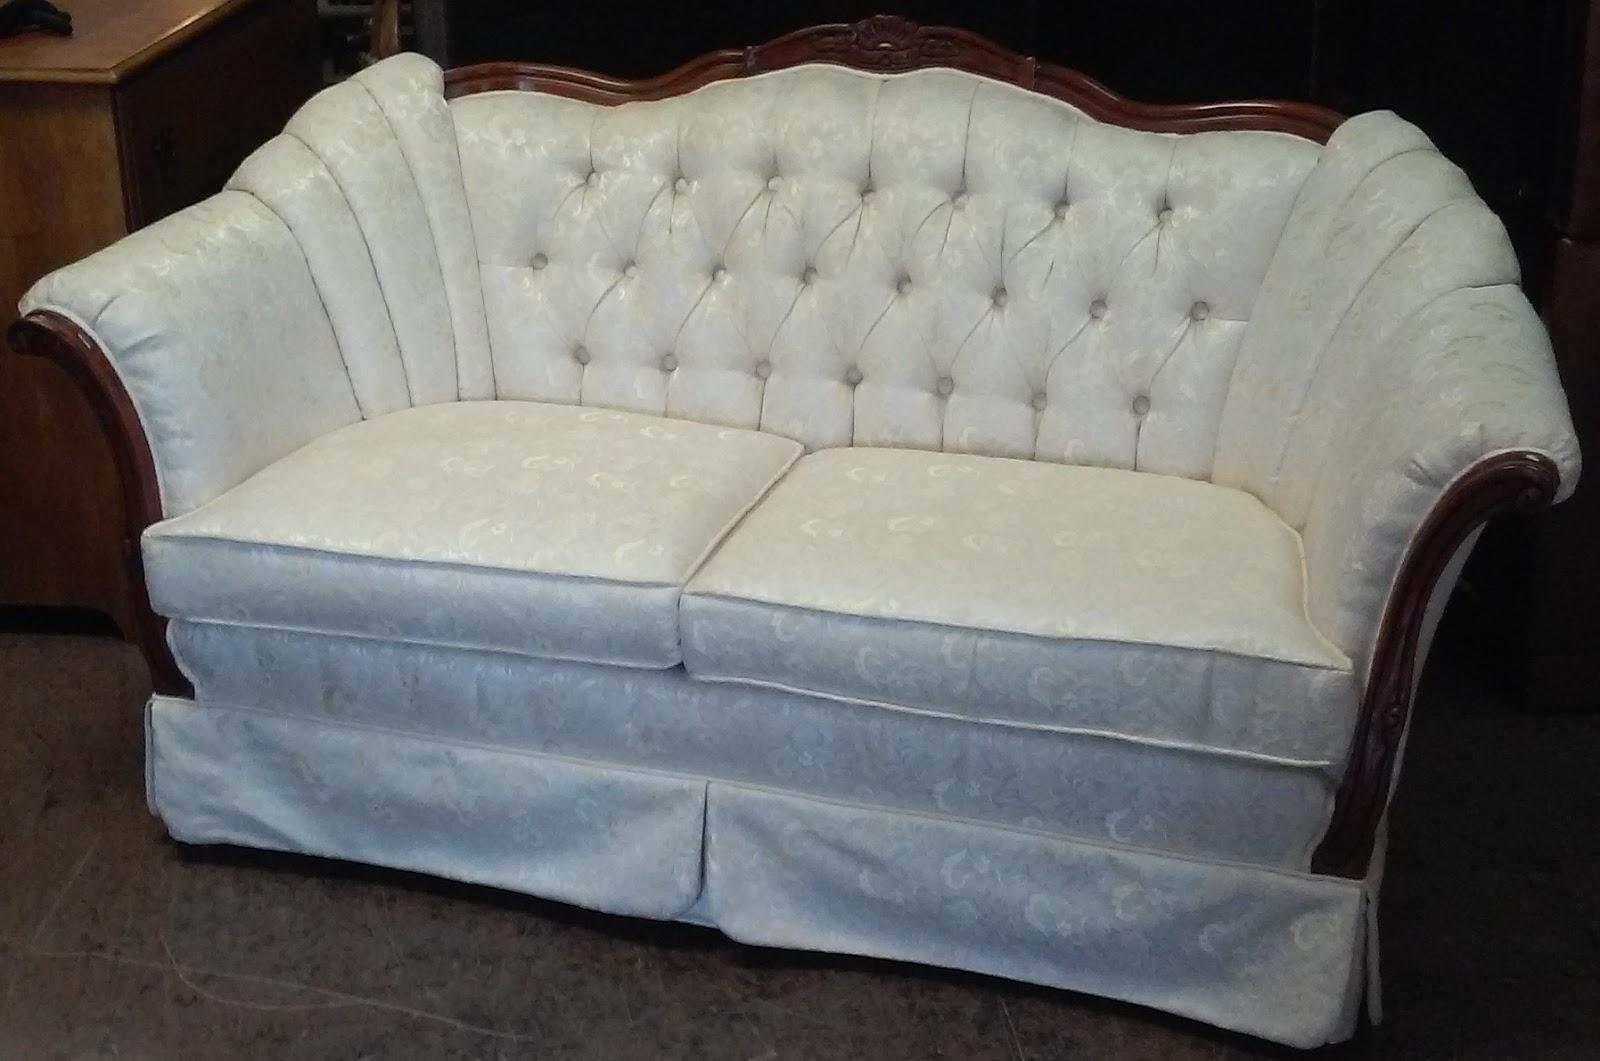 SOLD **REDUCED** Kimberly Furniture French Loveseat   $115